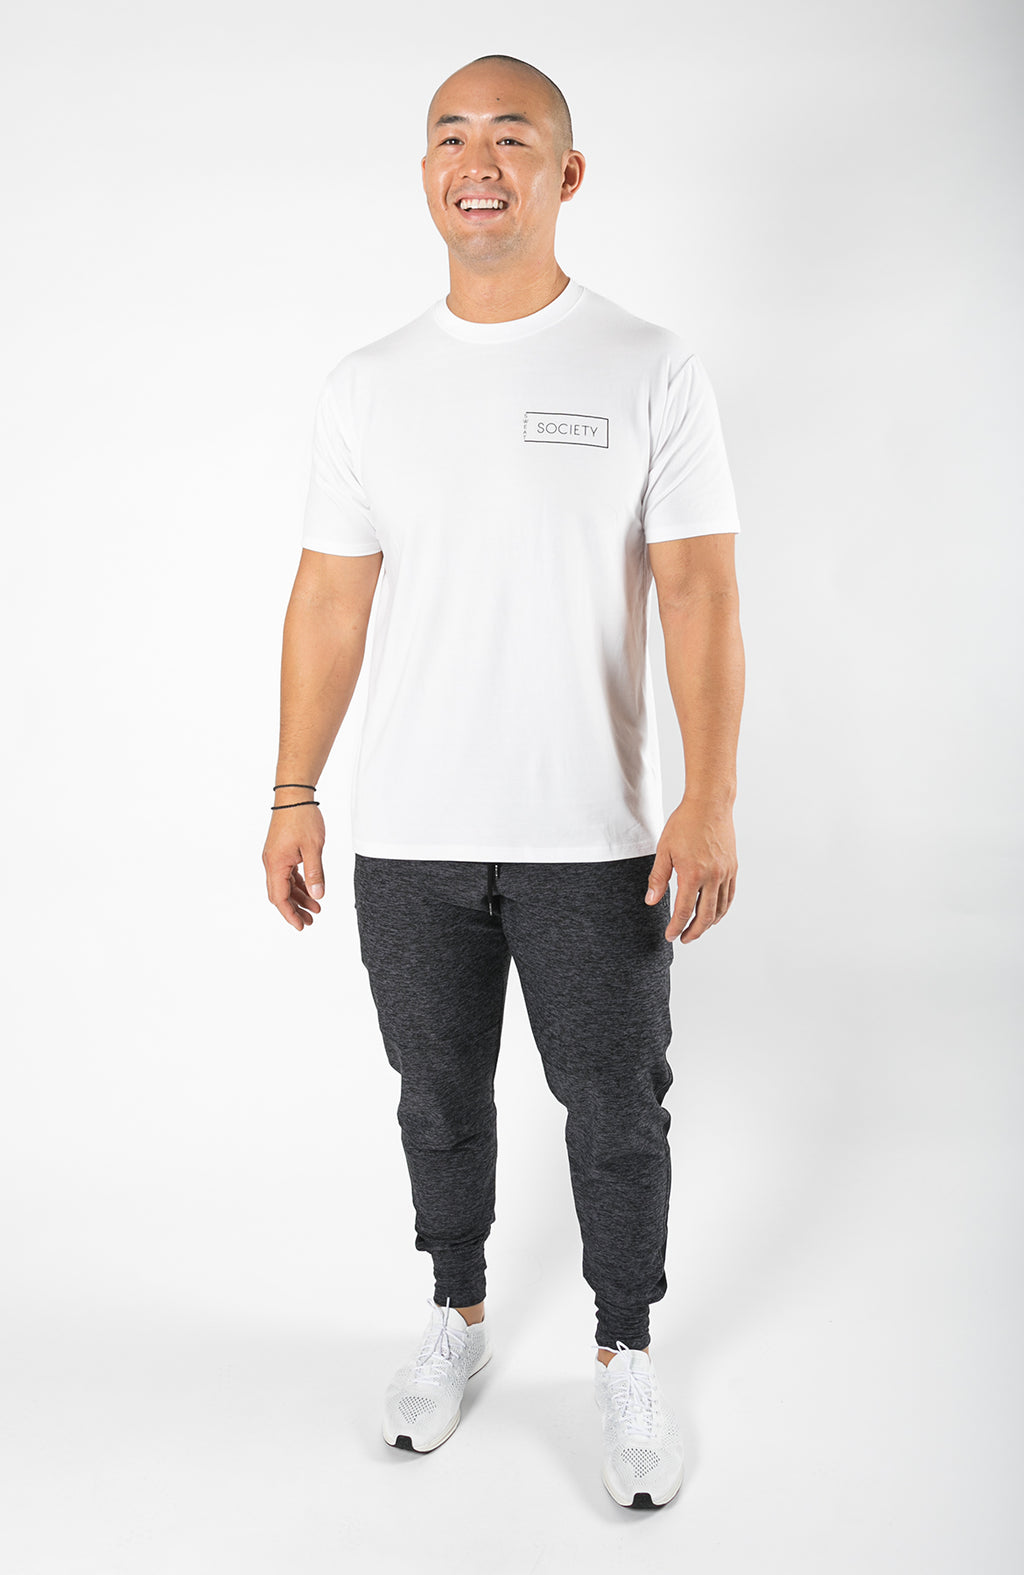 Sweat Society Hayden Bamboo Tee Ethical Activewear